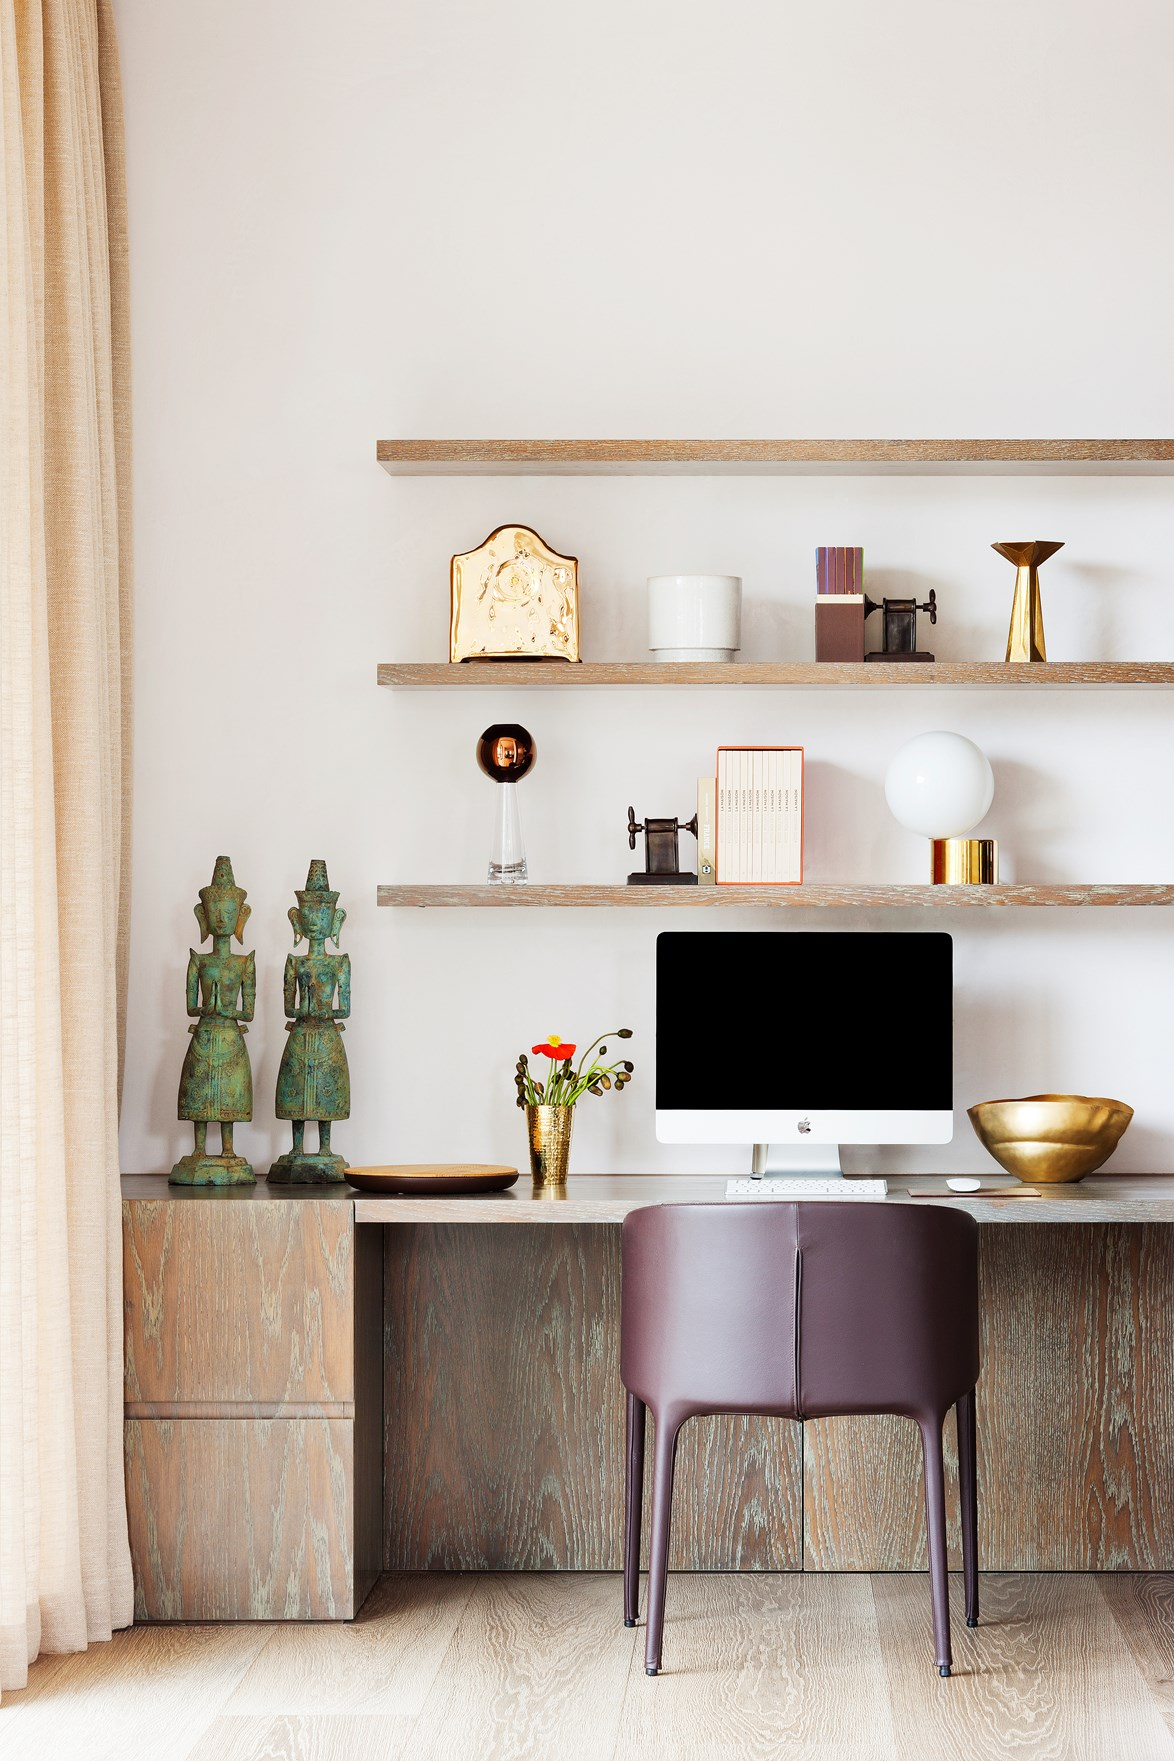 Keep your workspace clean and clutter-free to assist with productivity. *Photo:* Shannon McGrath / Belle